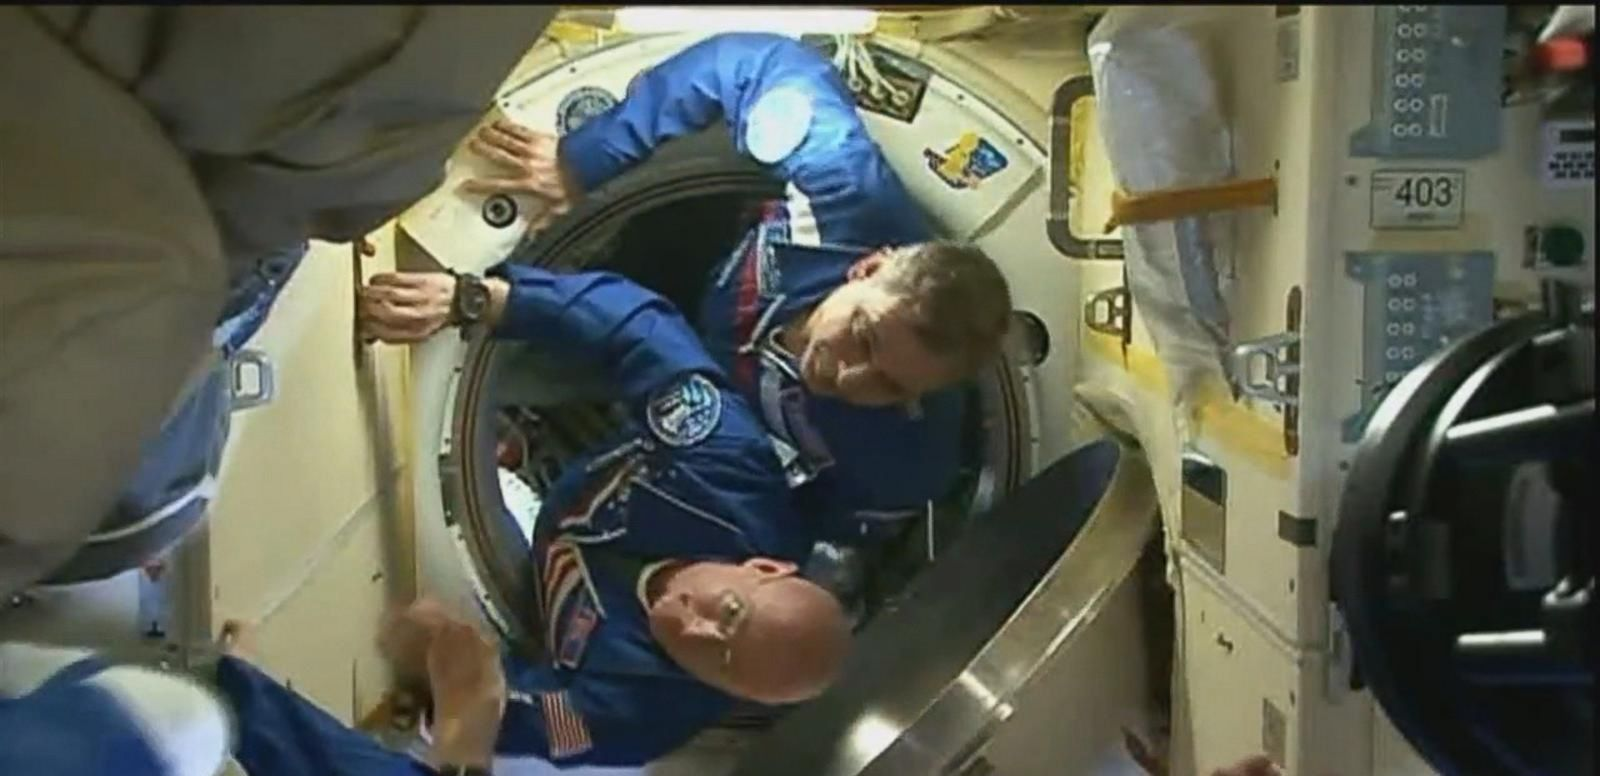 VIDEO: Instant Index: Scott Kelly's Year-Long ISS Trip Off to a Good Start